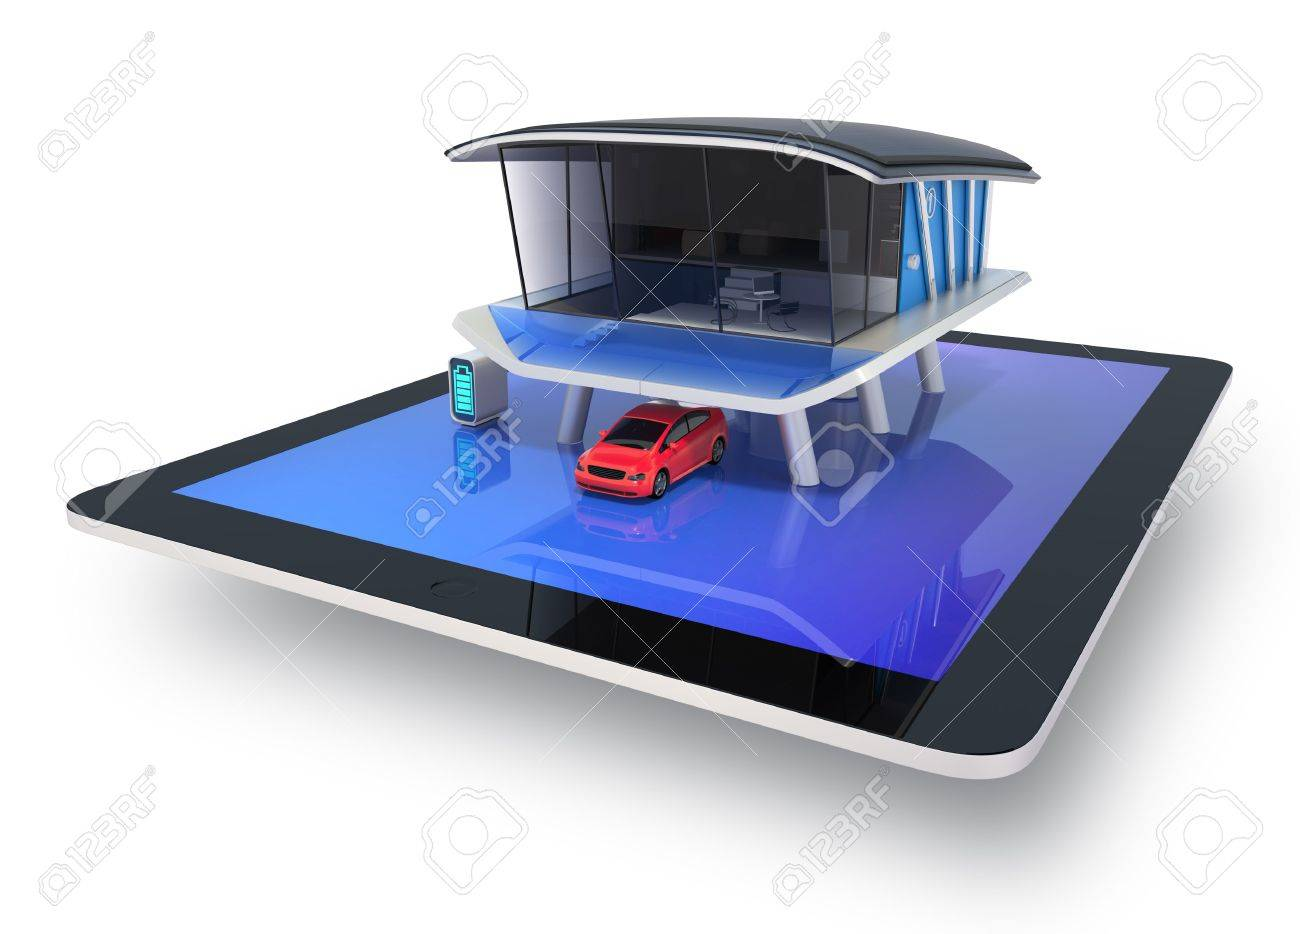 Design house car - Stock Photo Stylish Futuristic Design House On A Tablet Screen With Solar Panel Home Battery System Electric Car Clipping Path Available